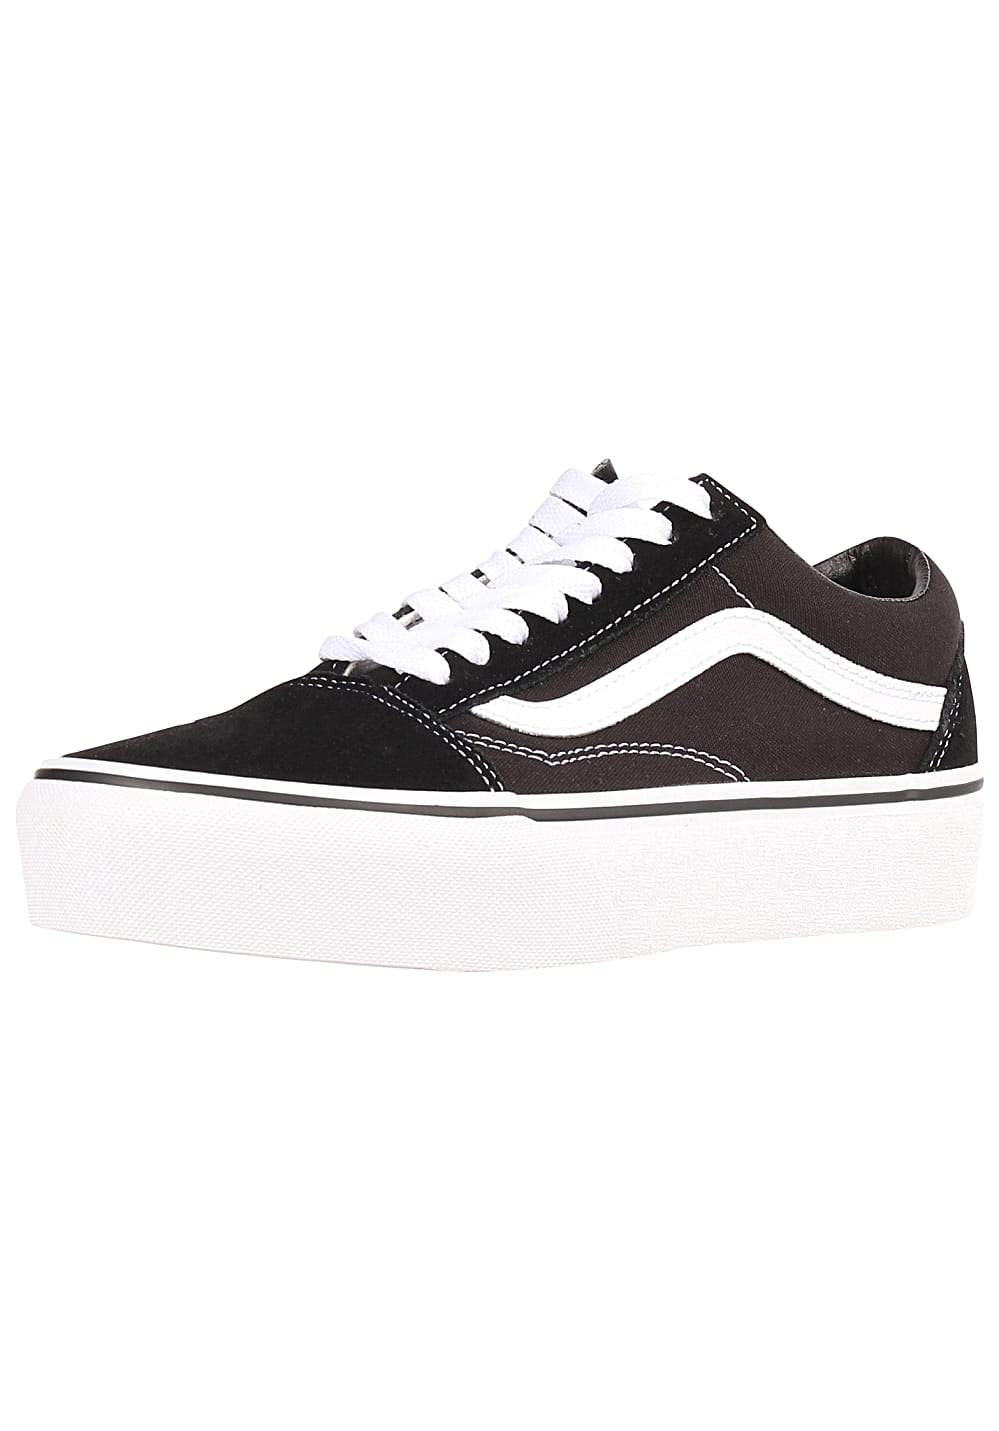 407352ab8c Vans Old Skool Platform - Sneakers for Women - Black - Planet Sports